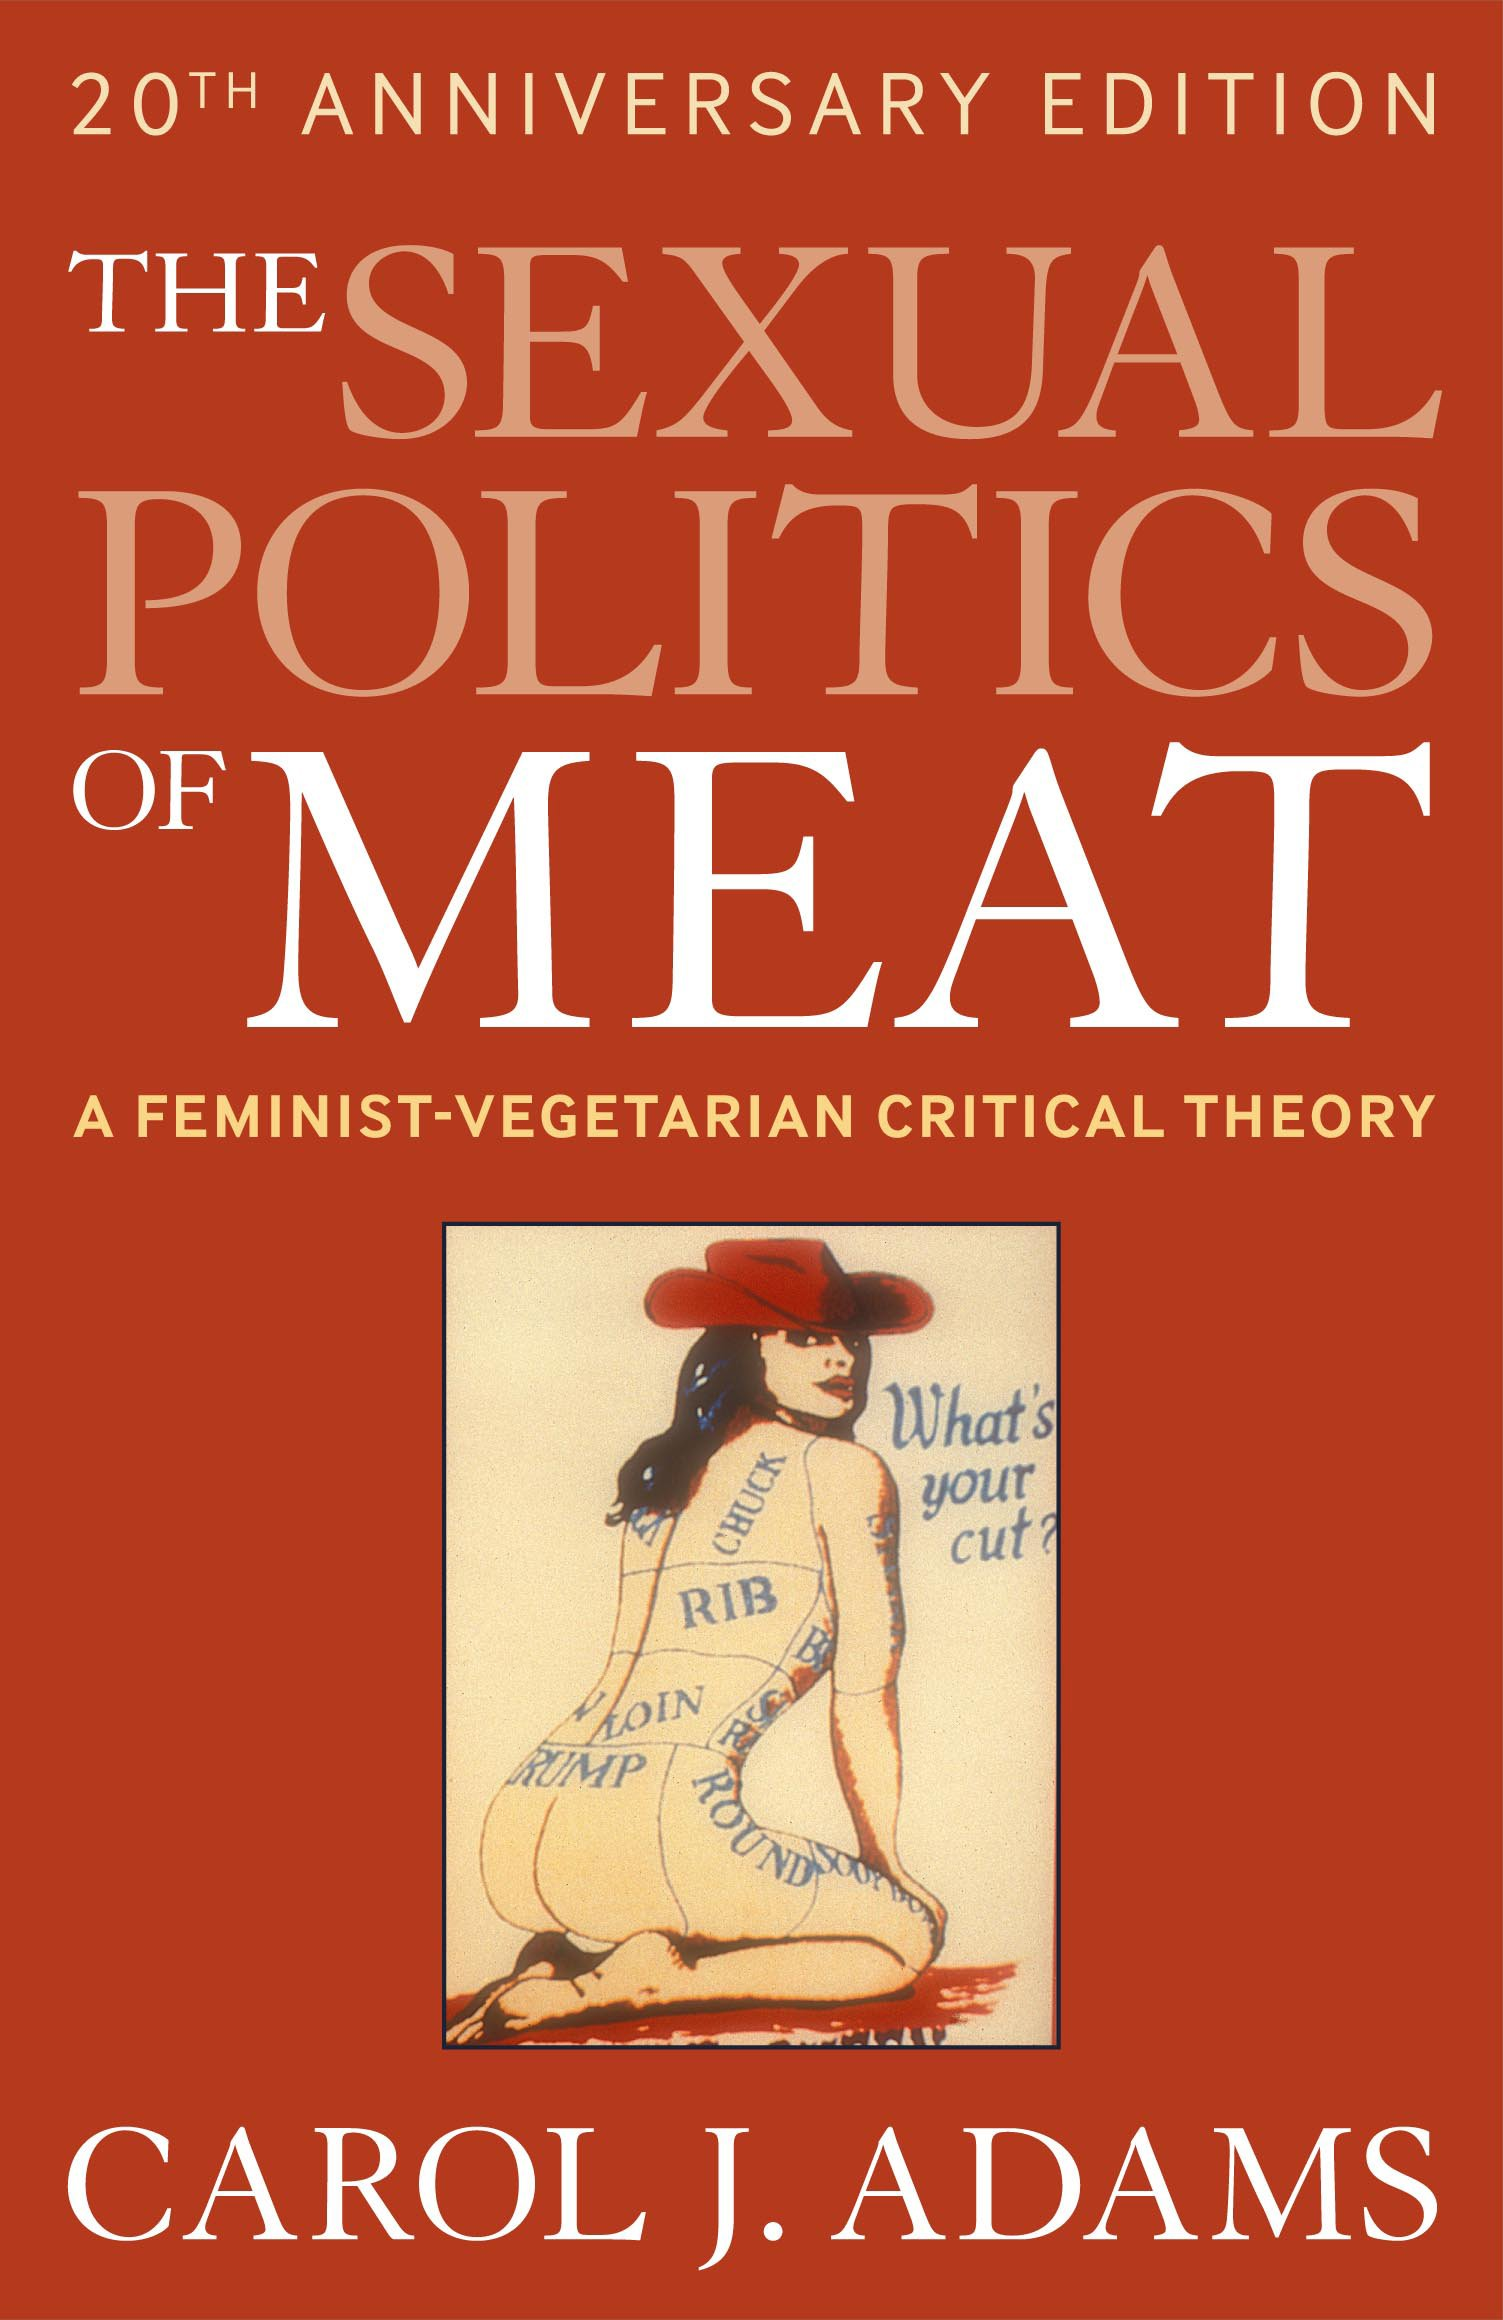 https://i0.wp.com/fatgayvegan.com/wp-content/uploads/2015/09/the-sexual-politics-of-meat-a-feminist-vegetarian-critical-theory-20th-anniversary-edition_3256186.jpg?fit=1503%2C2320